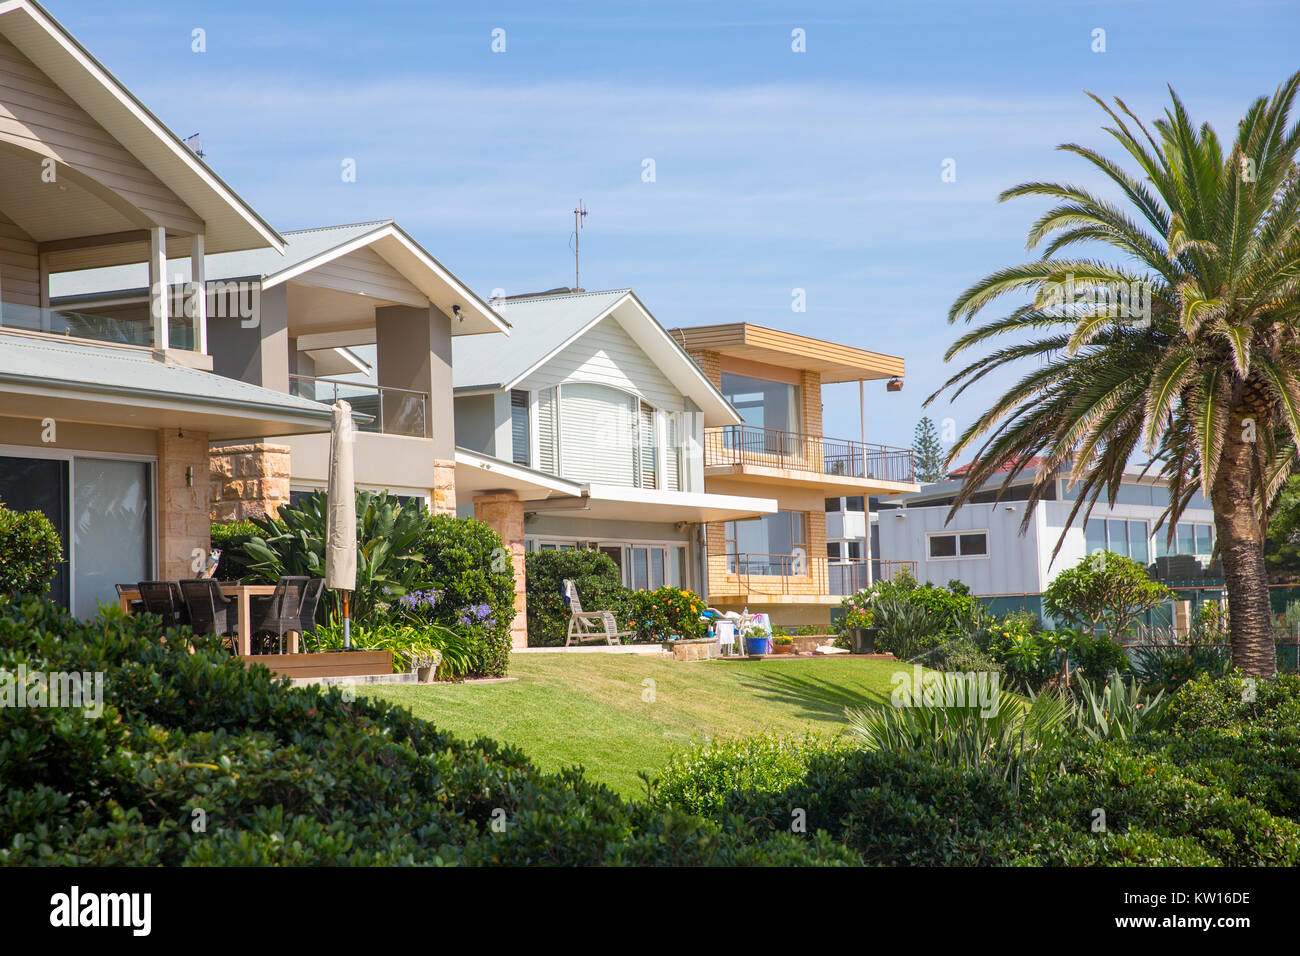 Luxury Homes Real Estate In Collaroy Overlooking The Ocean And The  Beach,Sydney,Australia